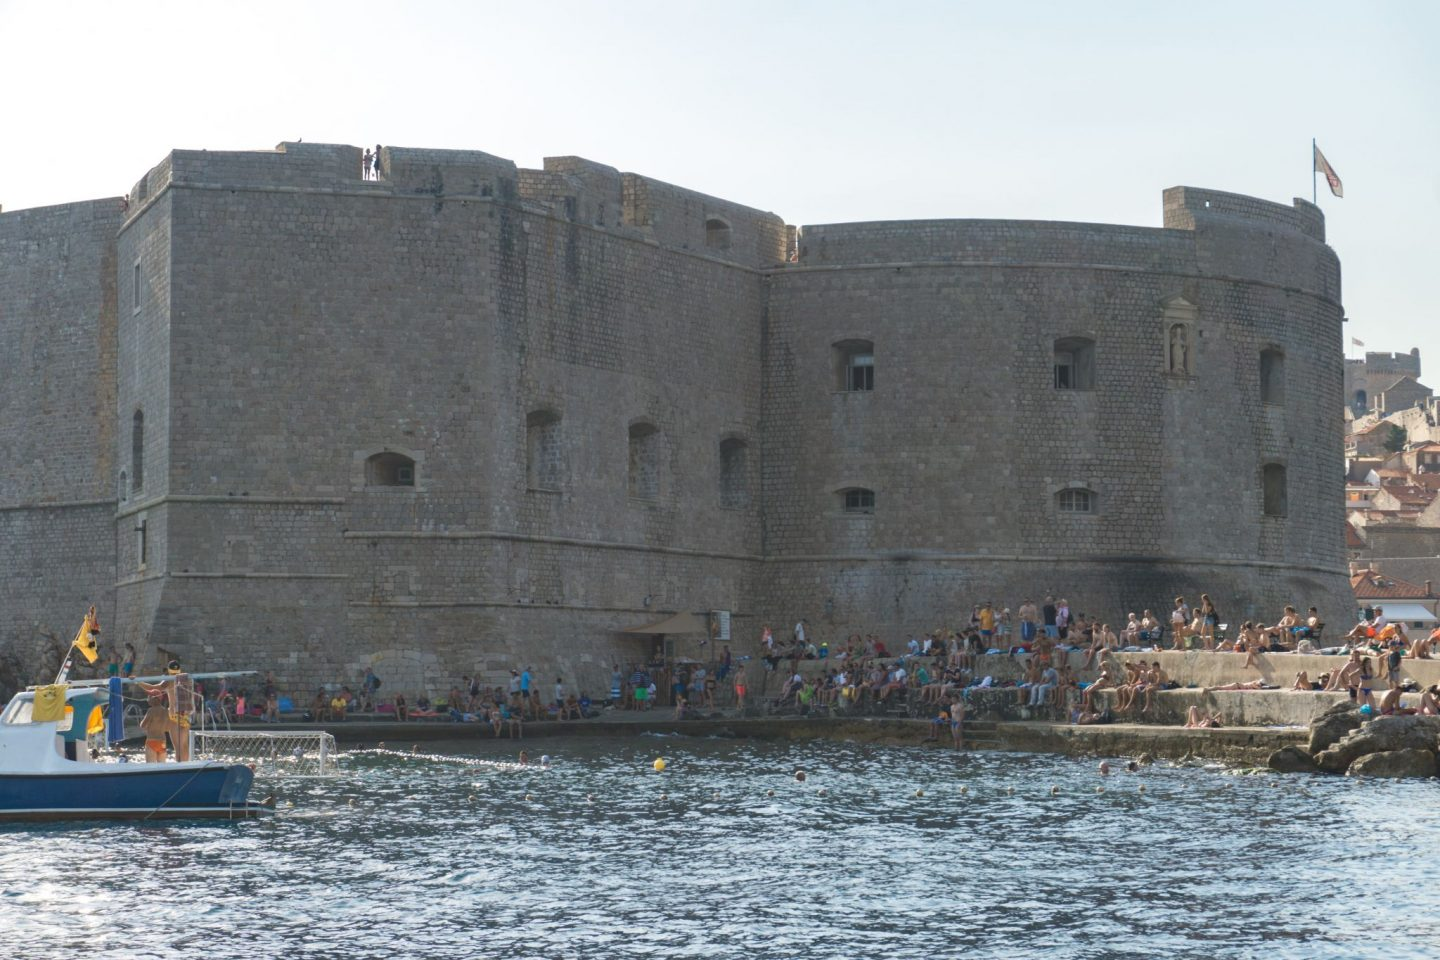 Travel Croatia Three Islands Tour Elafiti islands day trip Dubrovnik City Guide Internal Harbour Dubrovnik City Walls Nadia El Ferdaoussi the daily s'elf water polo